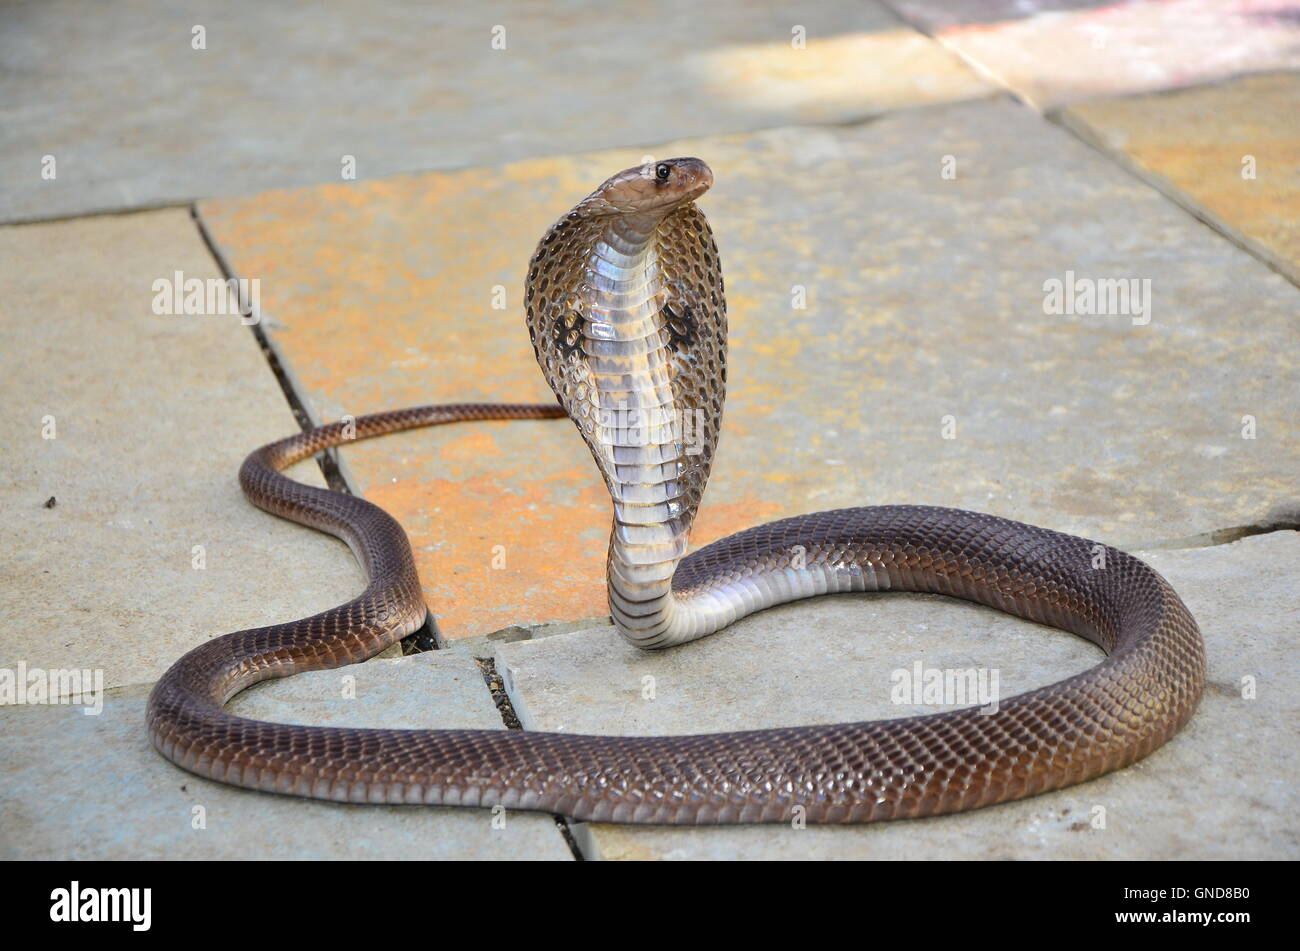 Indian Spectacled Cobra. - Stock Image